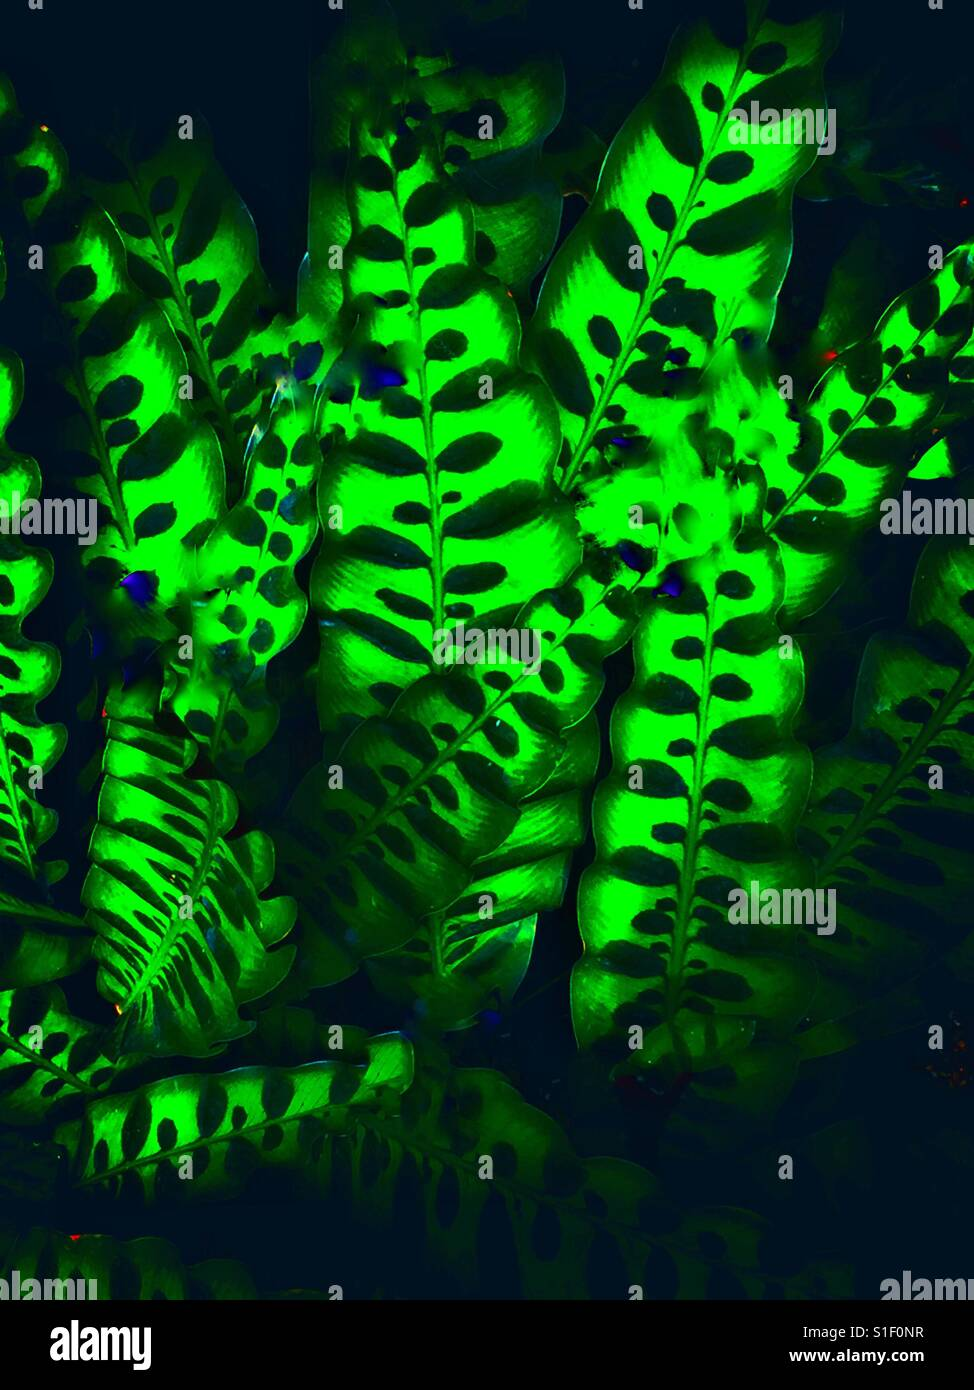 Calathea Makayano, peacock plant cathedral windows lit from within in the darkness - Stock Image